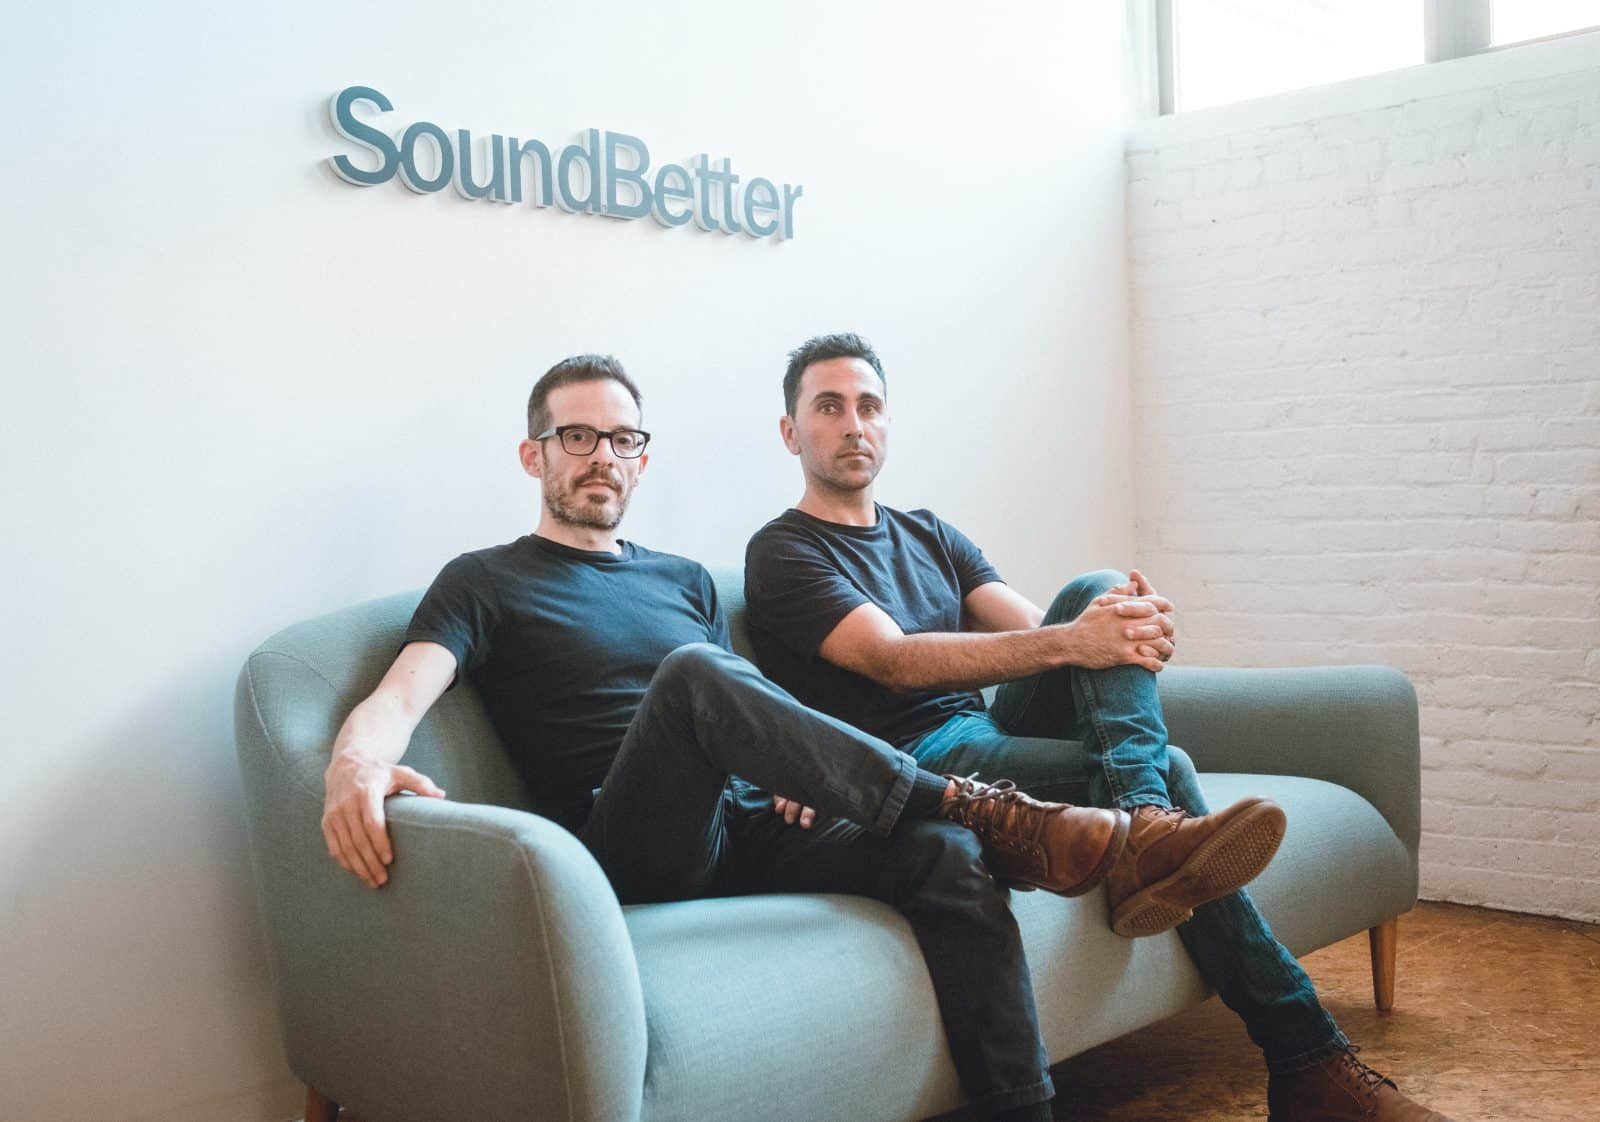 Spotify acquires SoundBetter, the popular music production marketplace